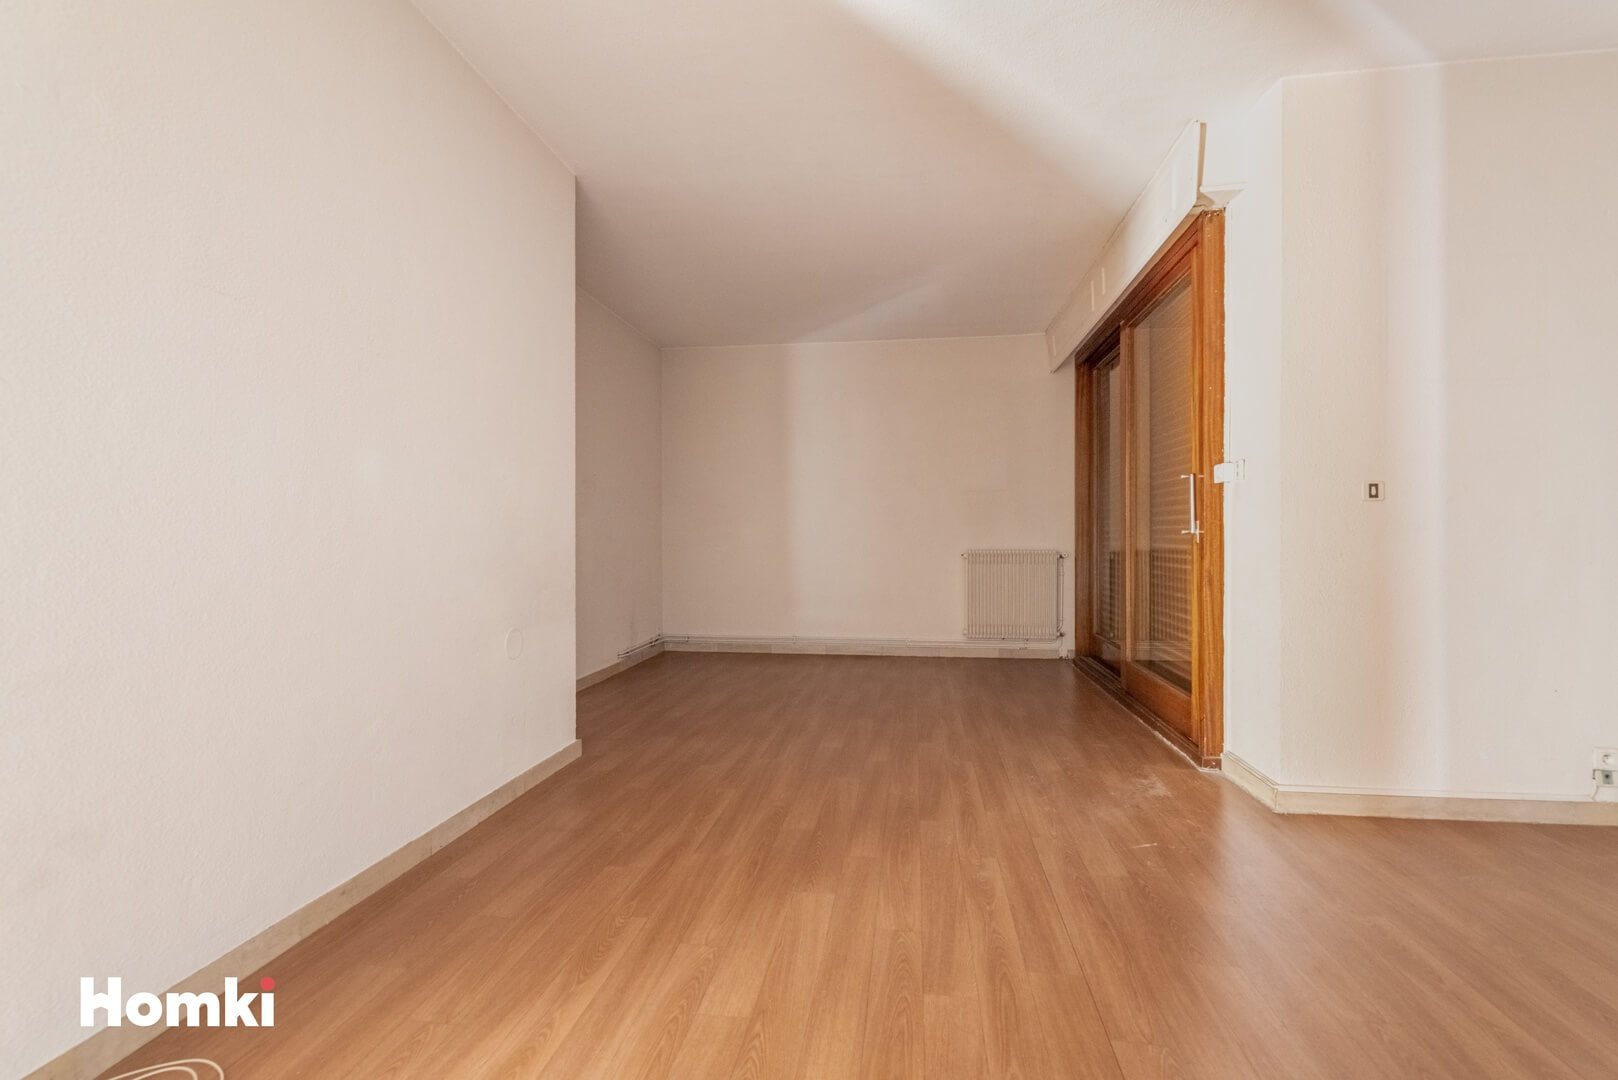 Homki - Vente appartement  de 84.0 m² à Montpellier 34070